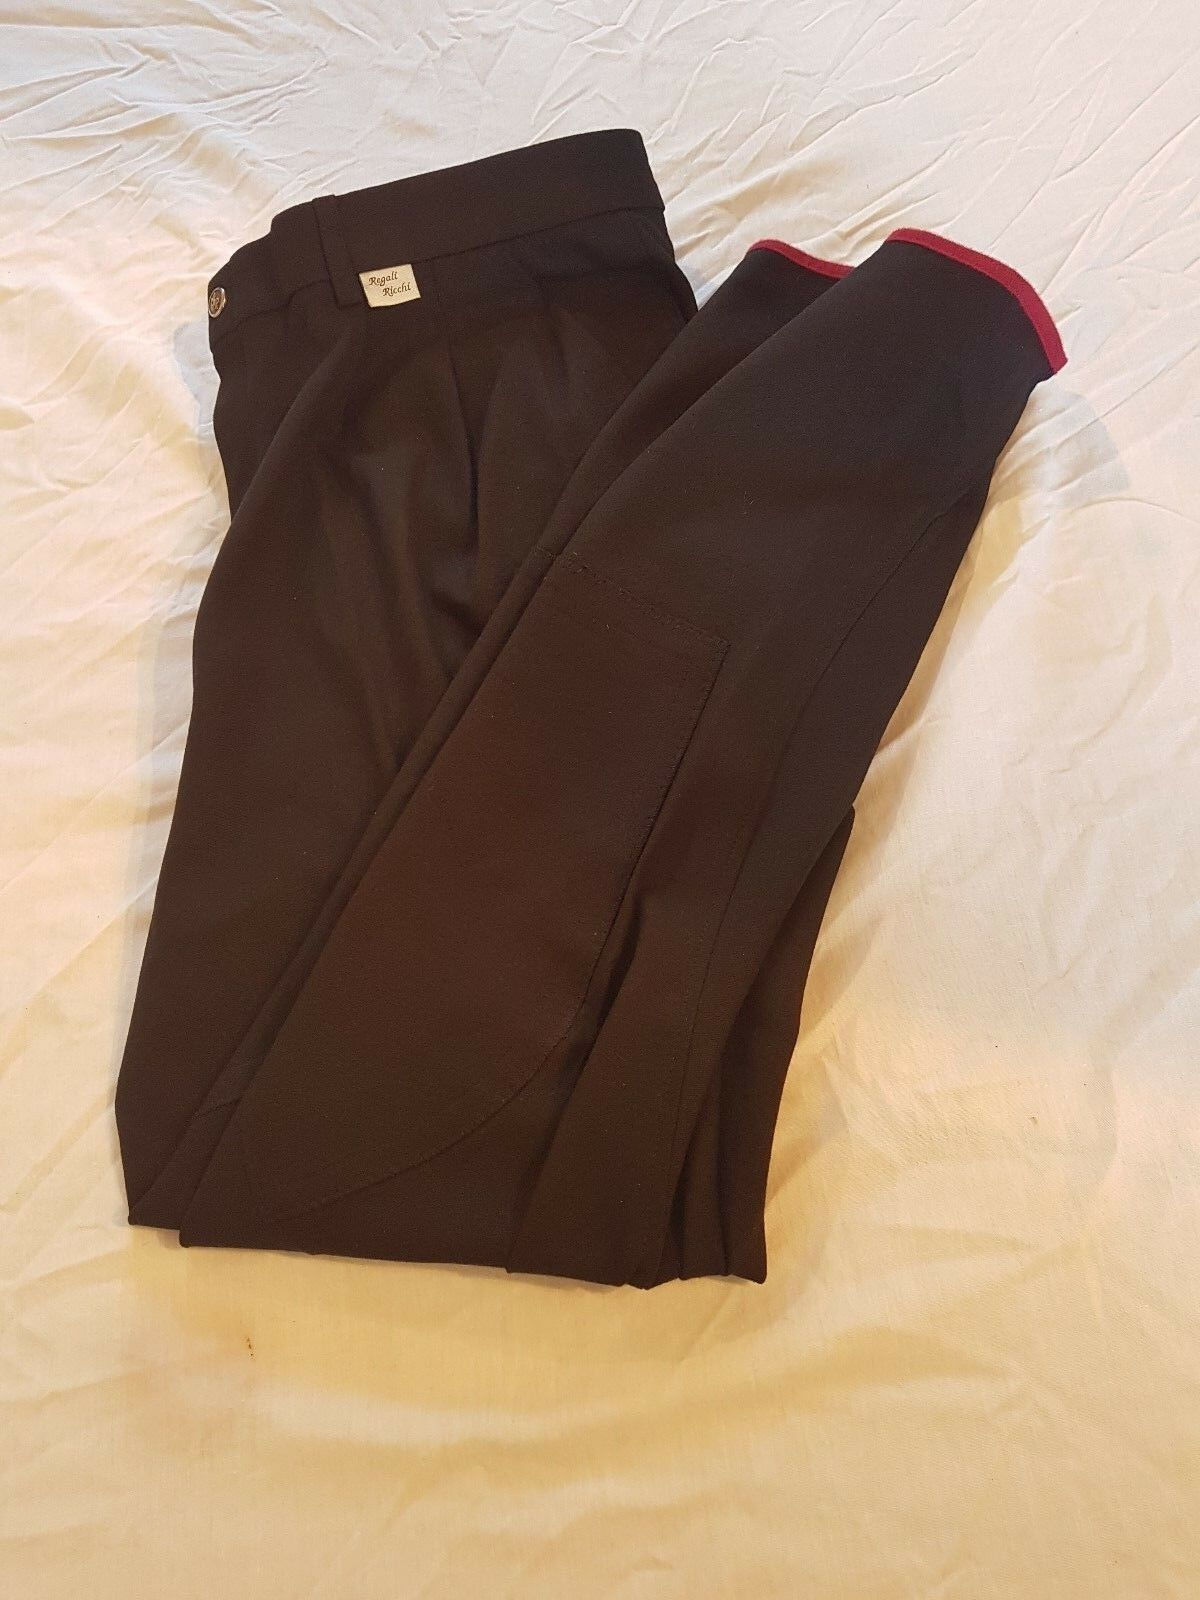 Sarm hippique regali breeches ricchi breeches regali 197ee3